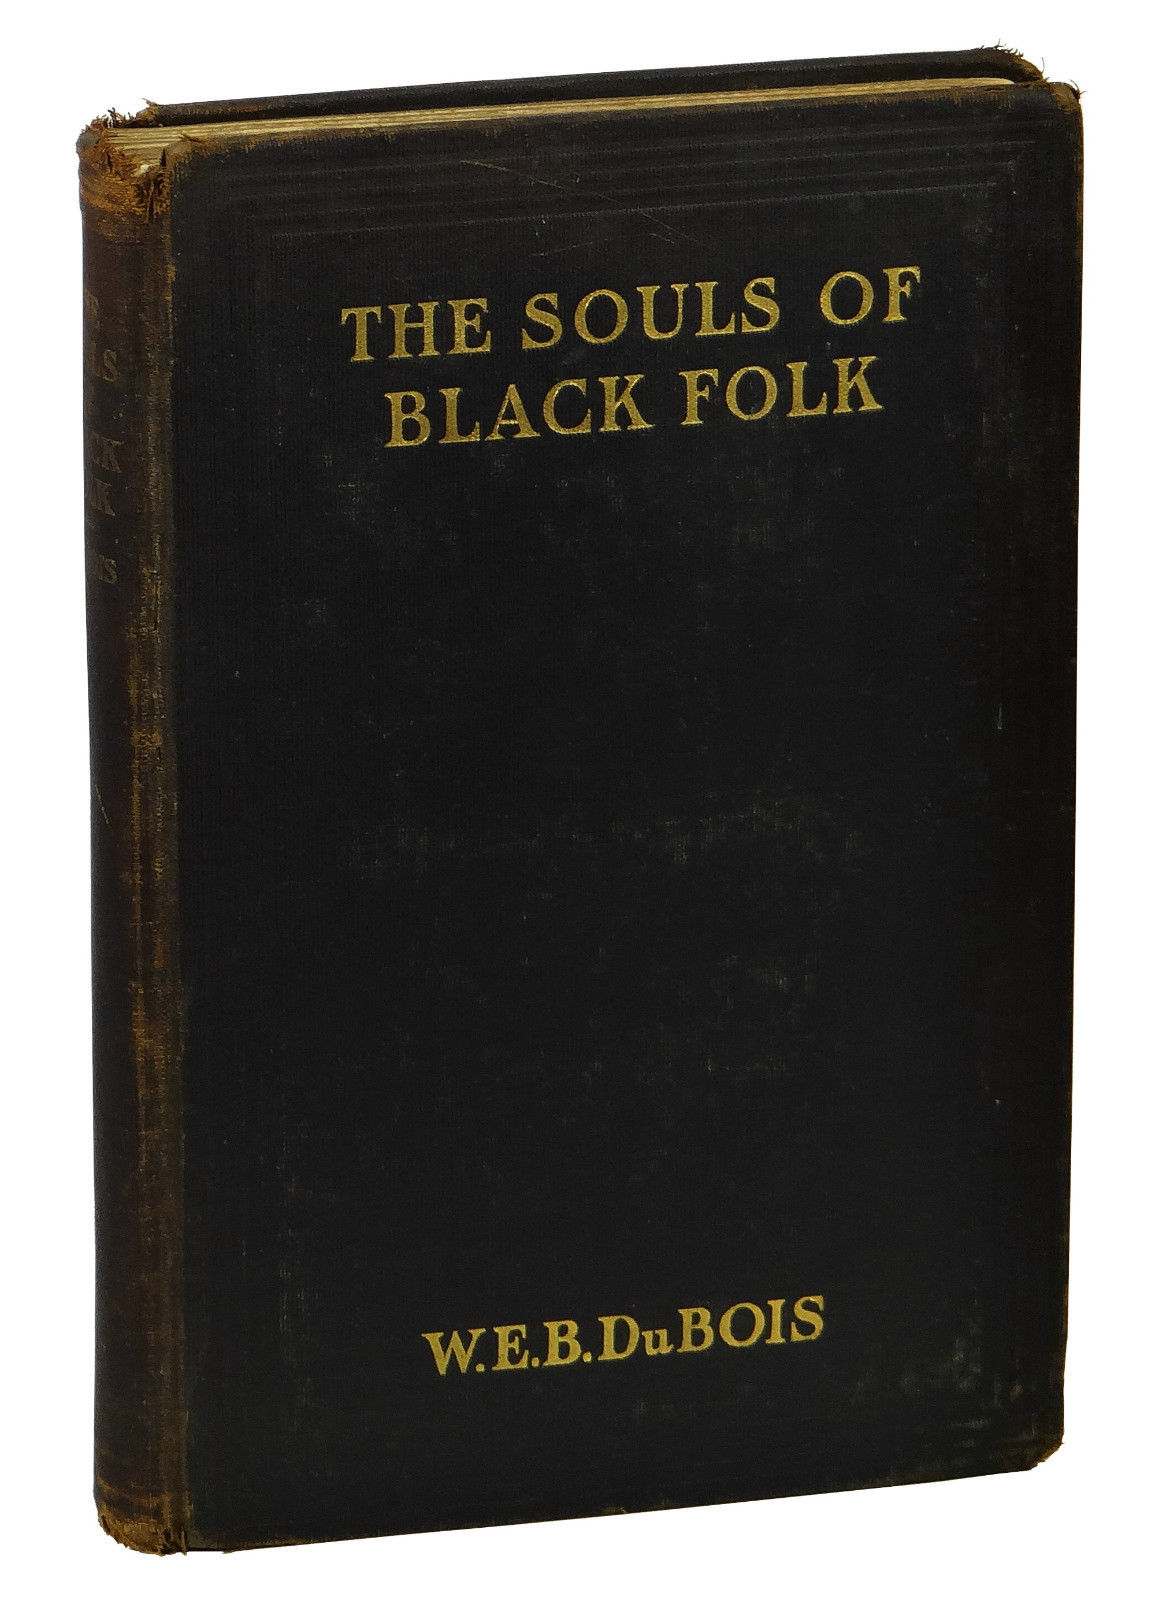 the souls of black folk essays and sketches w e b dubois w e b dubois the